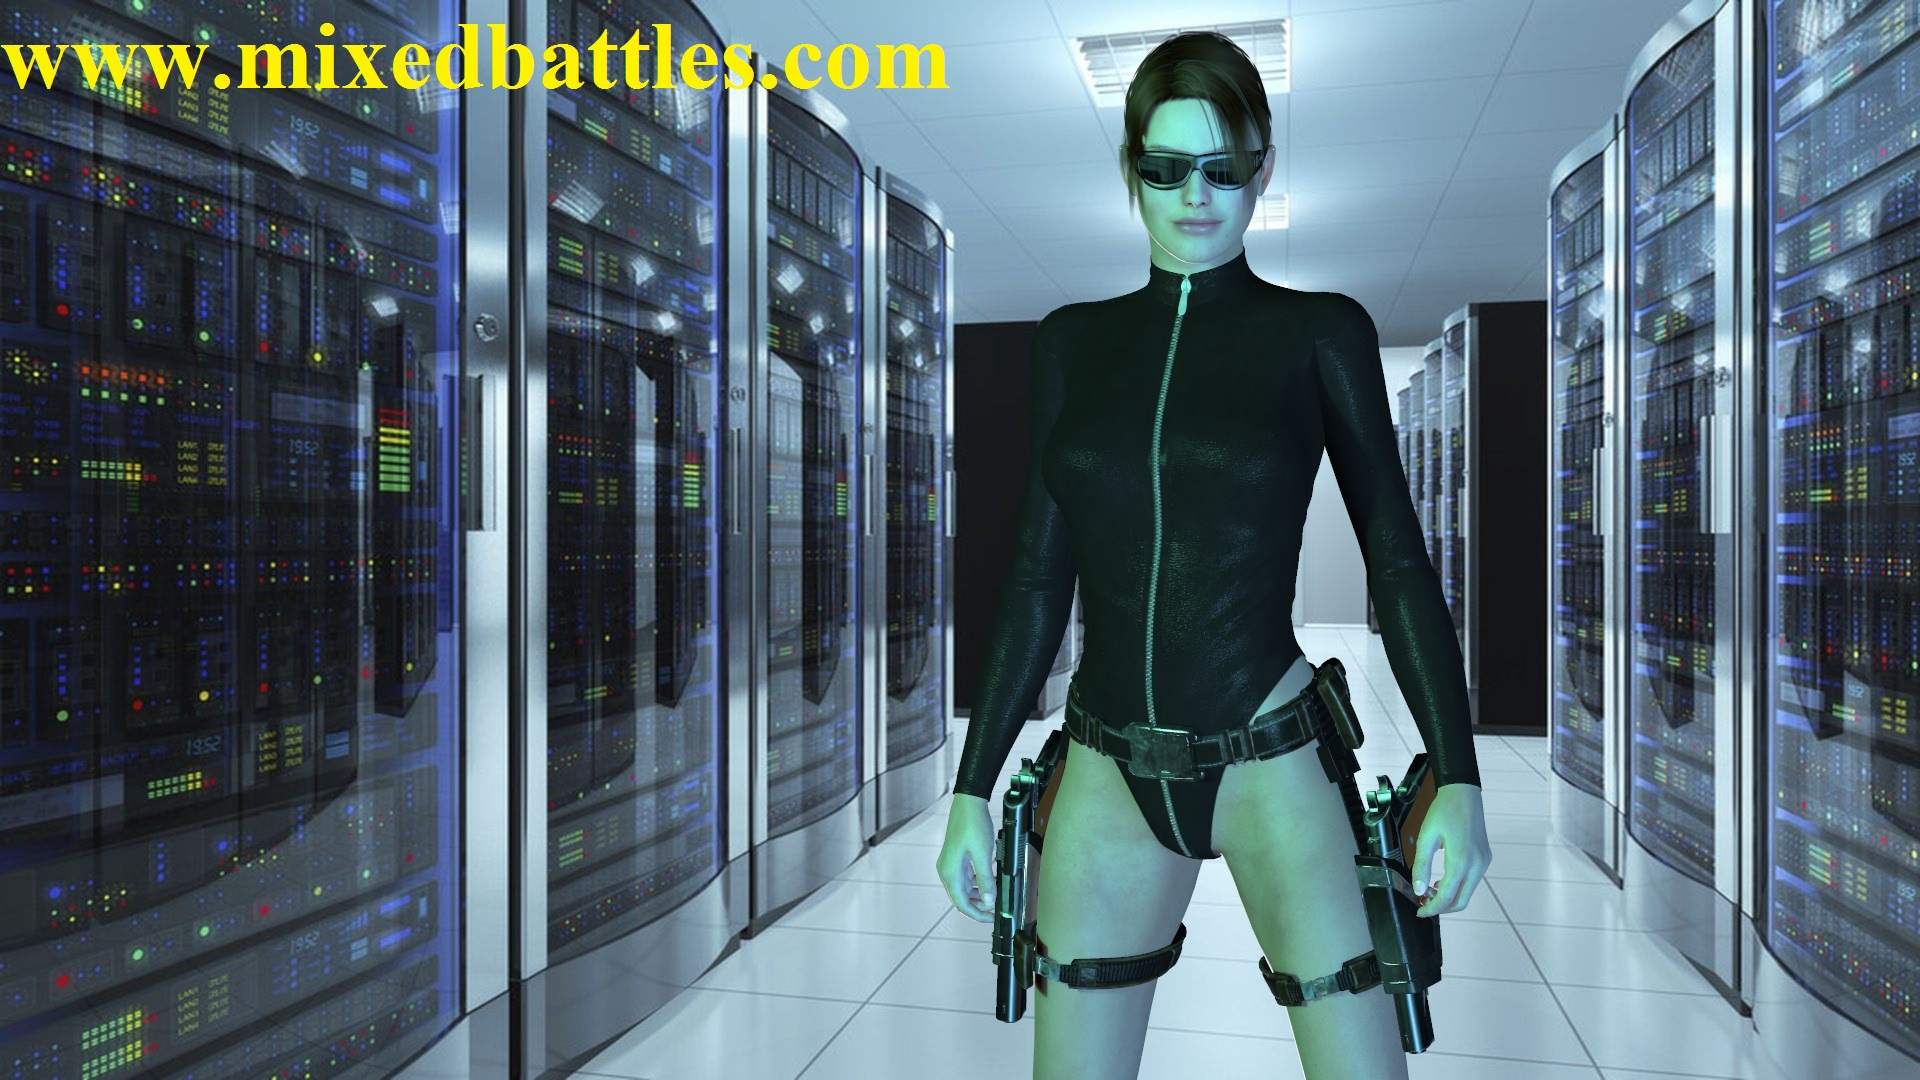 lara croft in computer room